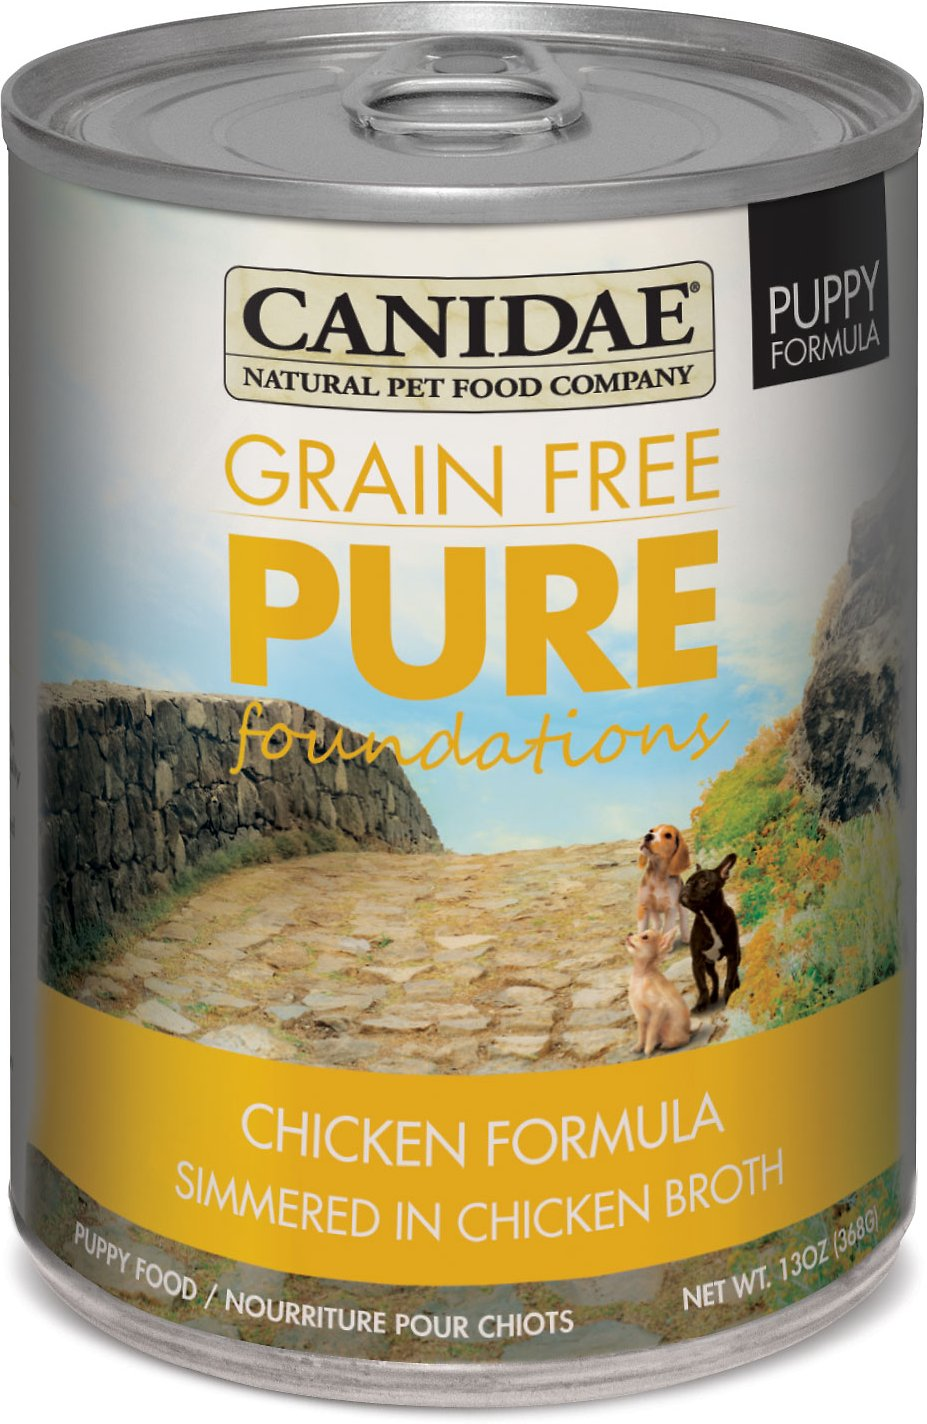 Canidae Grain-Free PURE Foundations Puppy Formula with Chicken Canned Dog Food, 13-oz